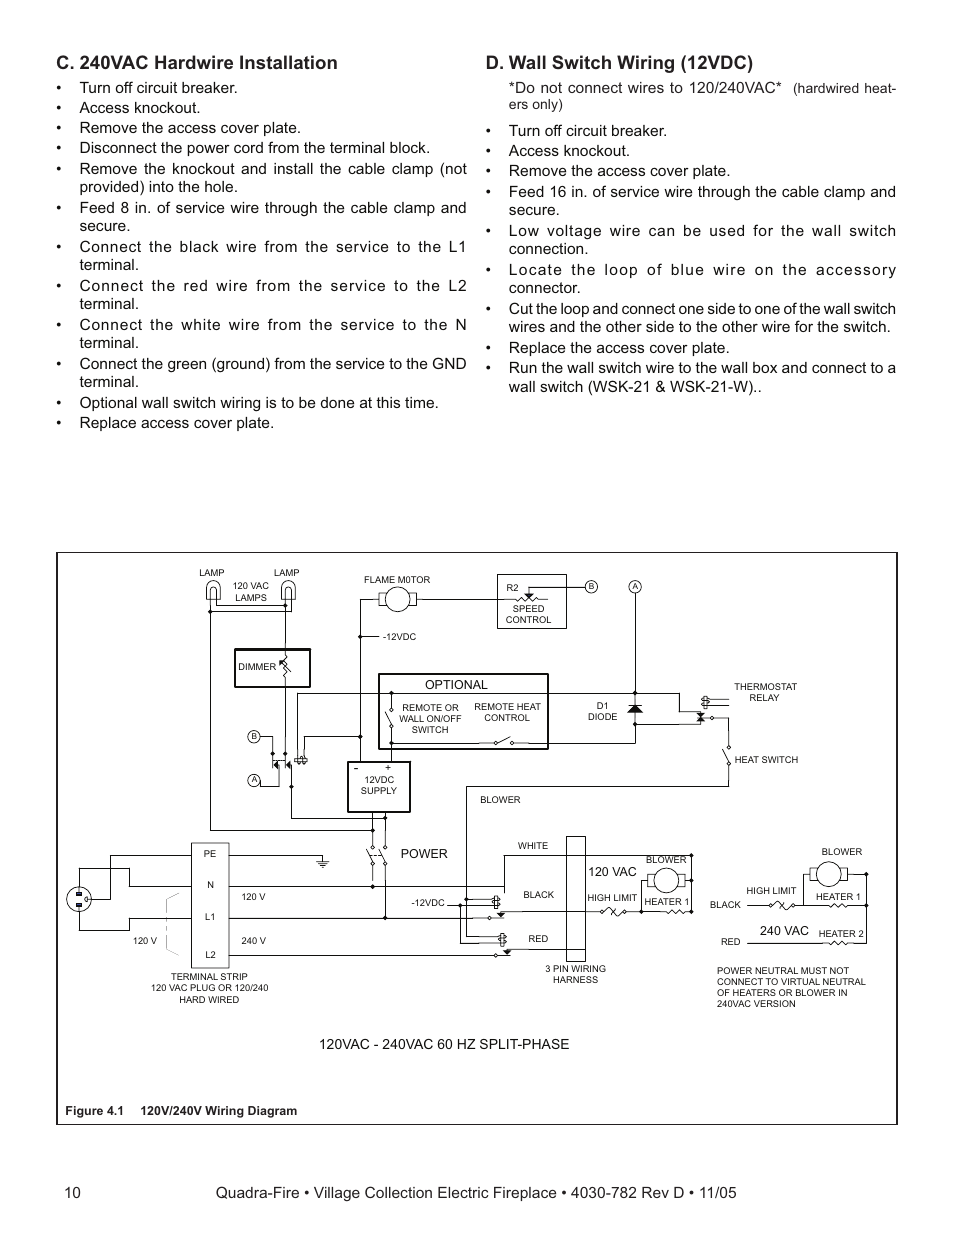 120v Vacuum Switch Diagram Electrical Wiring Diagrams 120 Vac Rocker Quadra Fire Trusted 3 Position Toggle